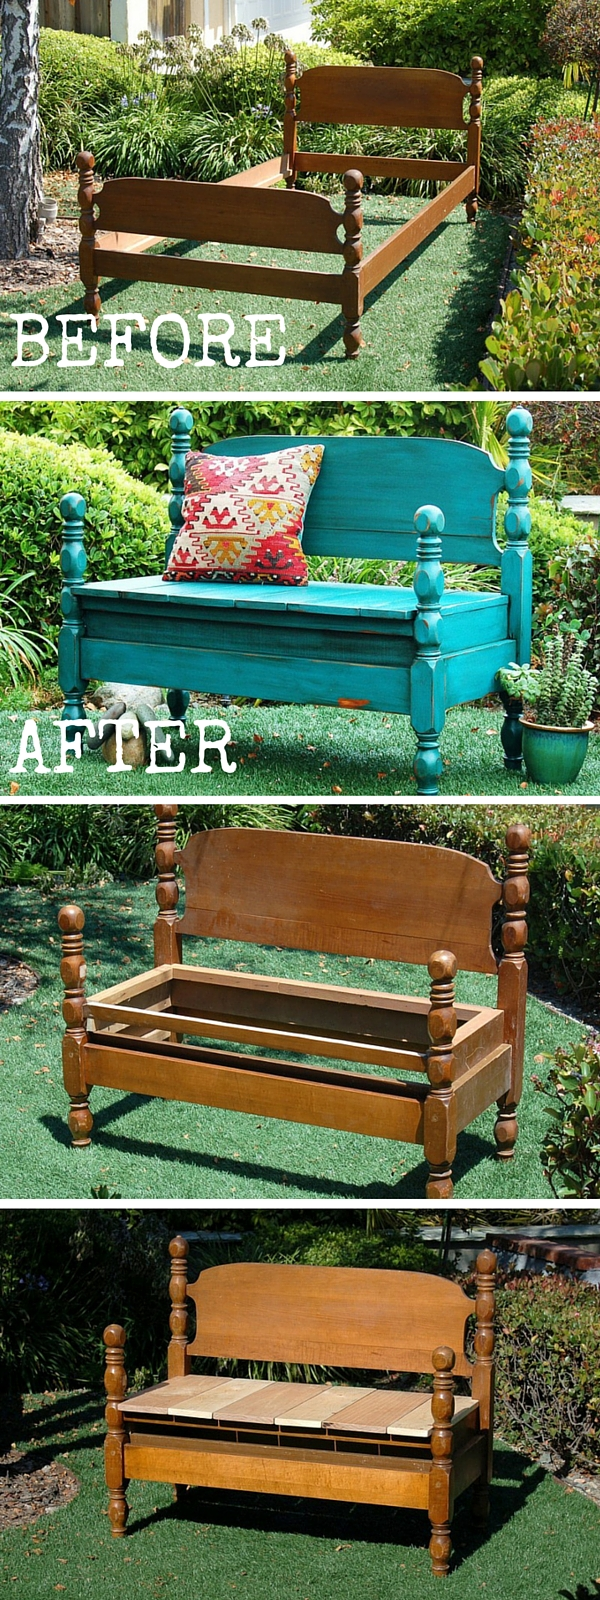 upcycled furniture upcycling reuse DIY The handy mano manomano bed bench